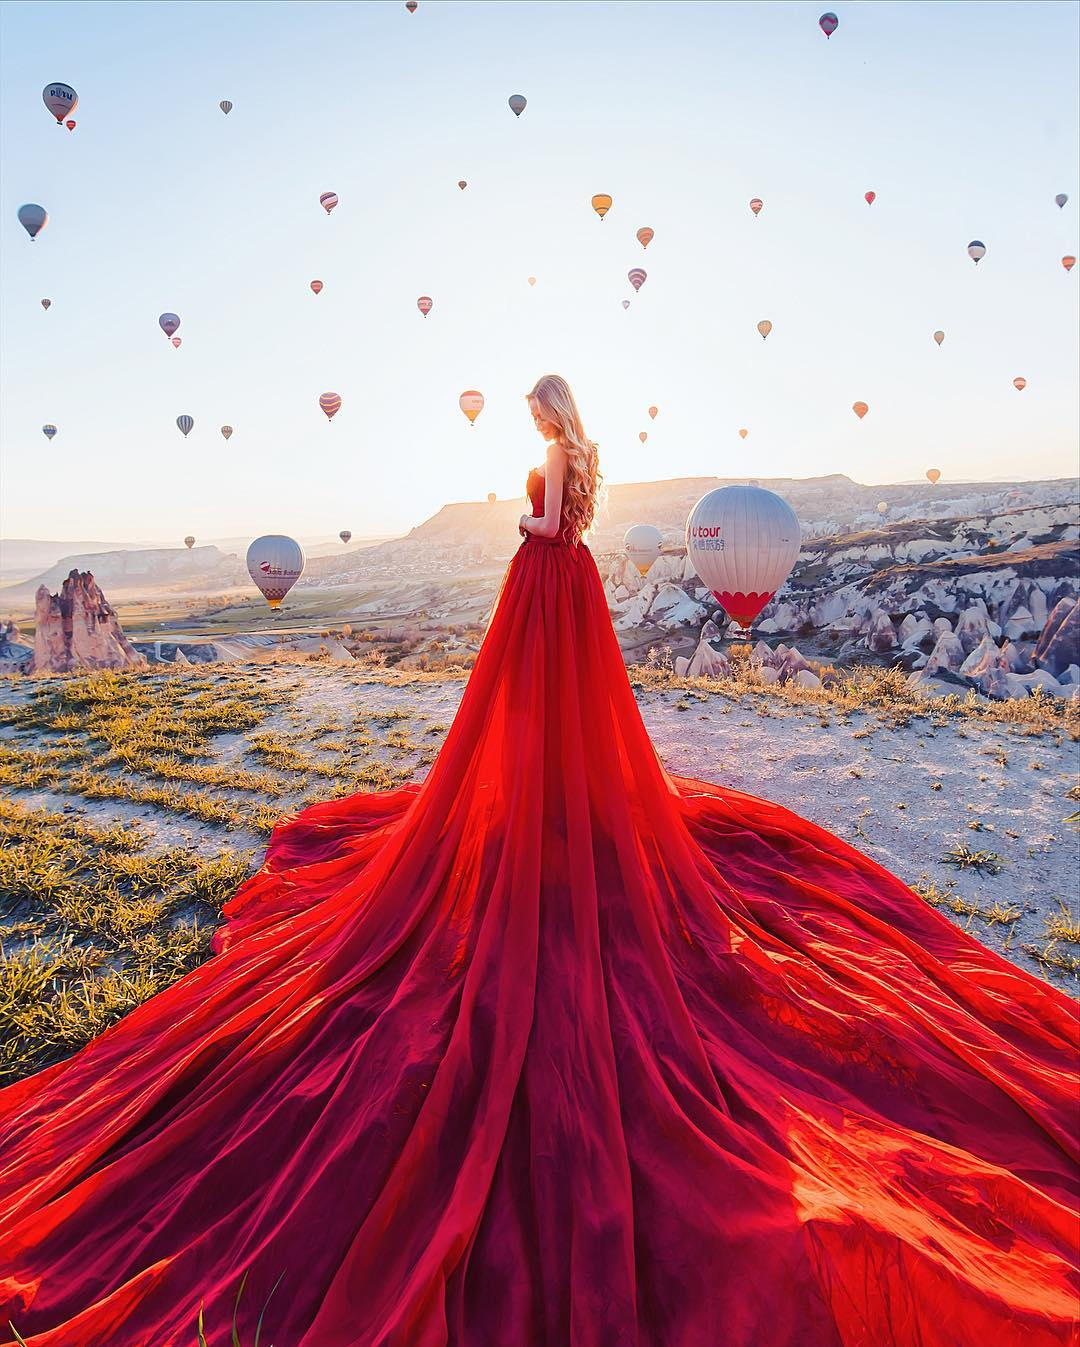 fashion photography, fashion photographer, landscape photography, kristina makeeva, hobopeeba instagram, russian photographer, reilly rebello, melissande rebello, curators of quirk, paris photography, eiffel tower photographs